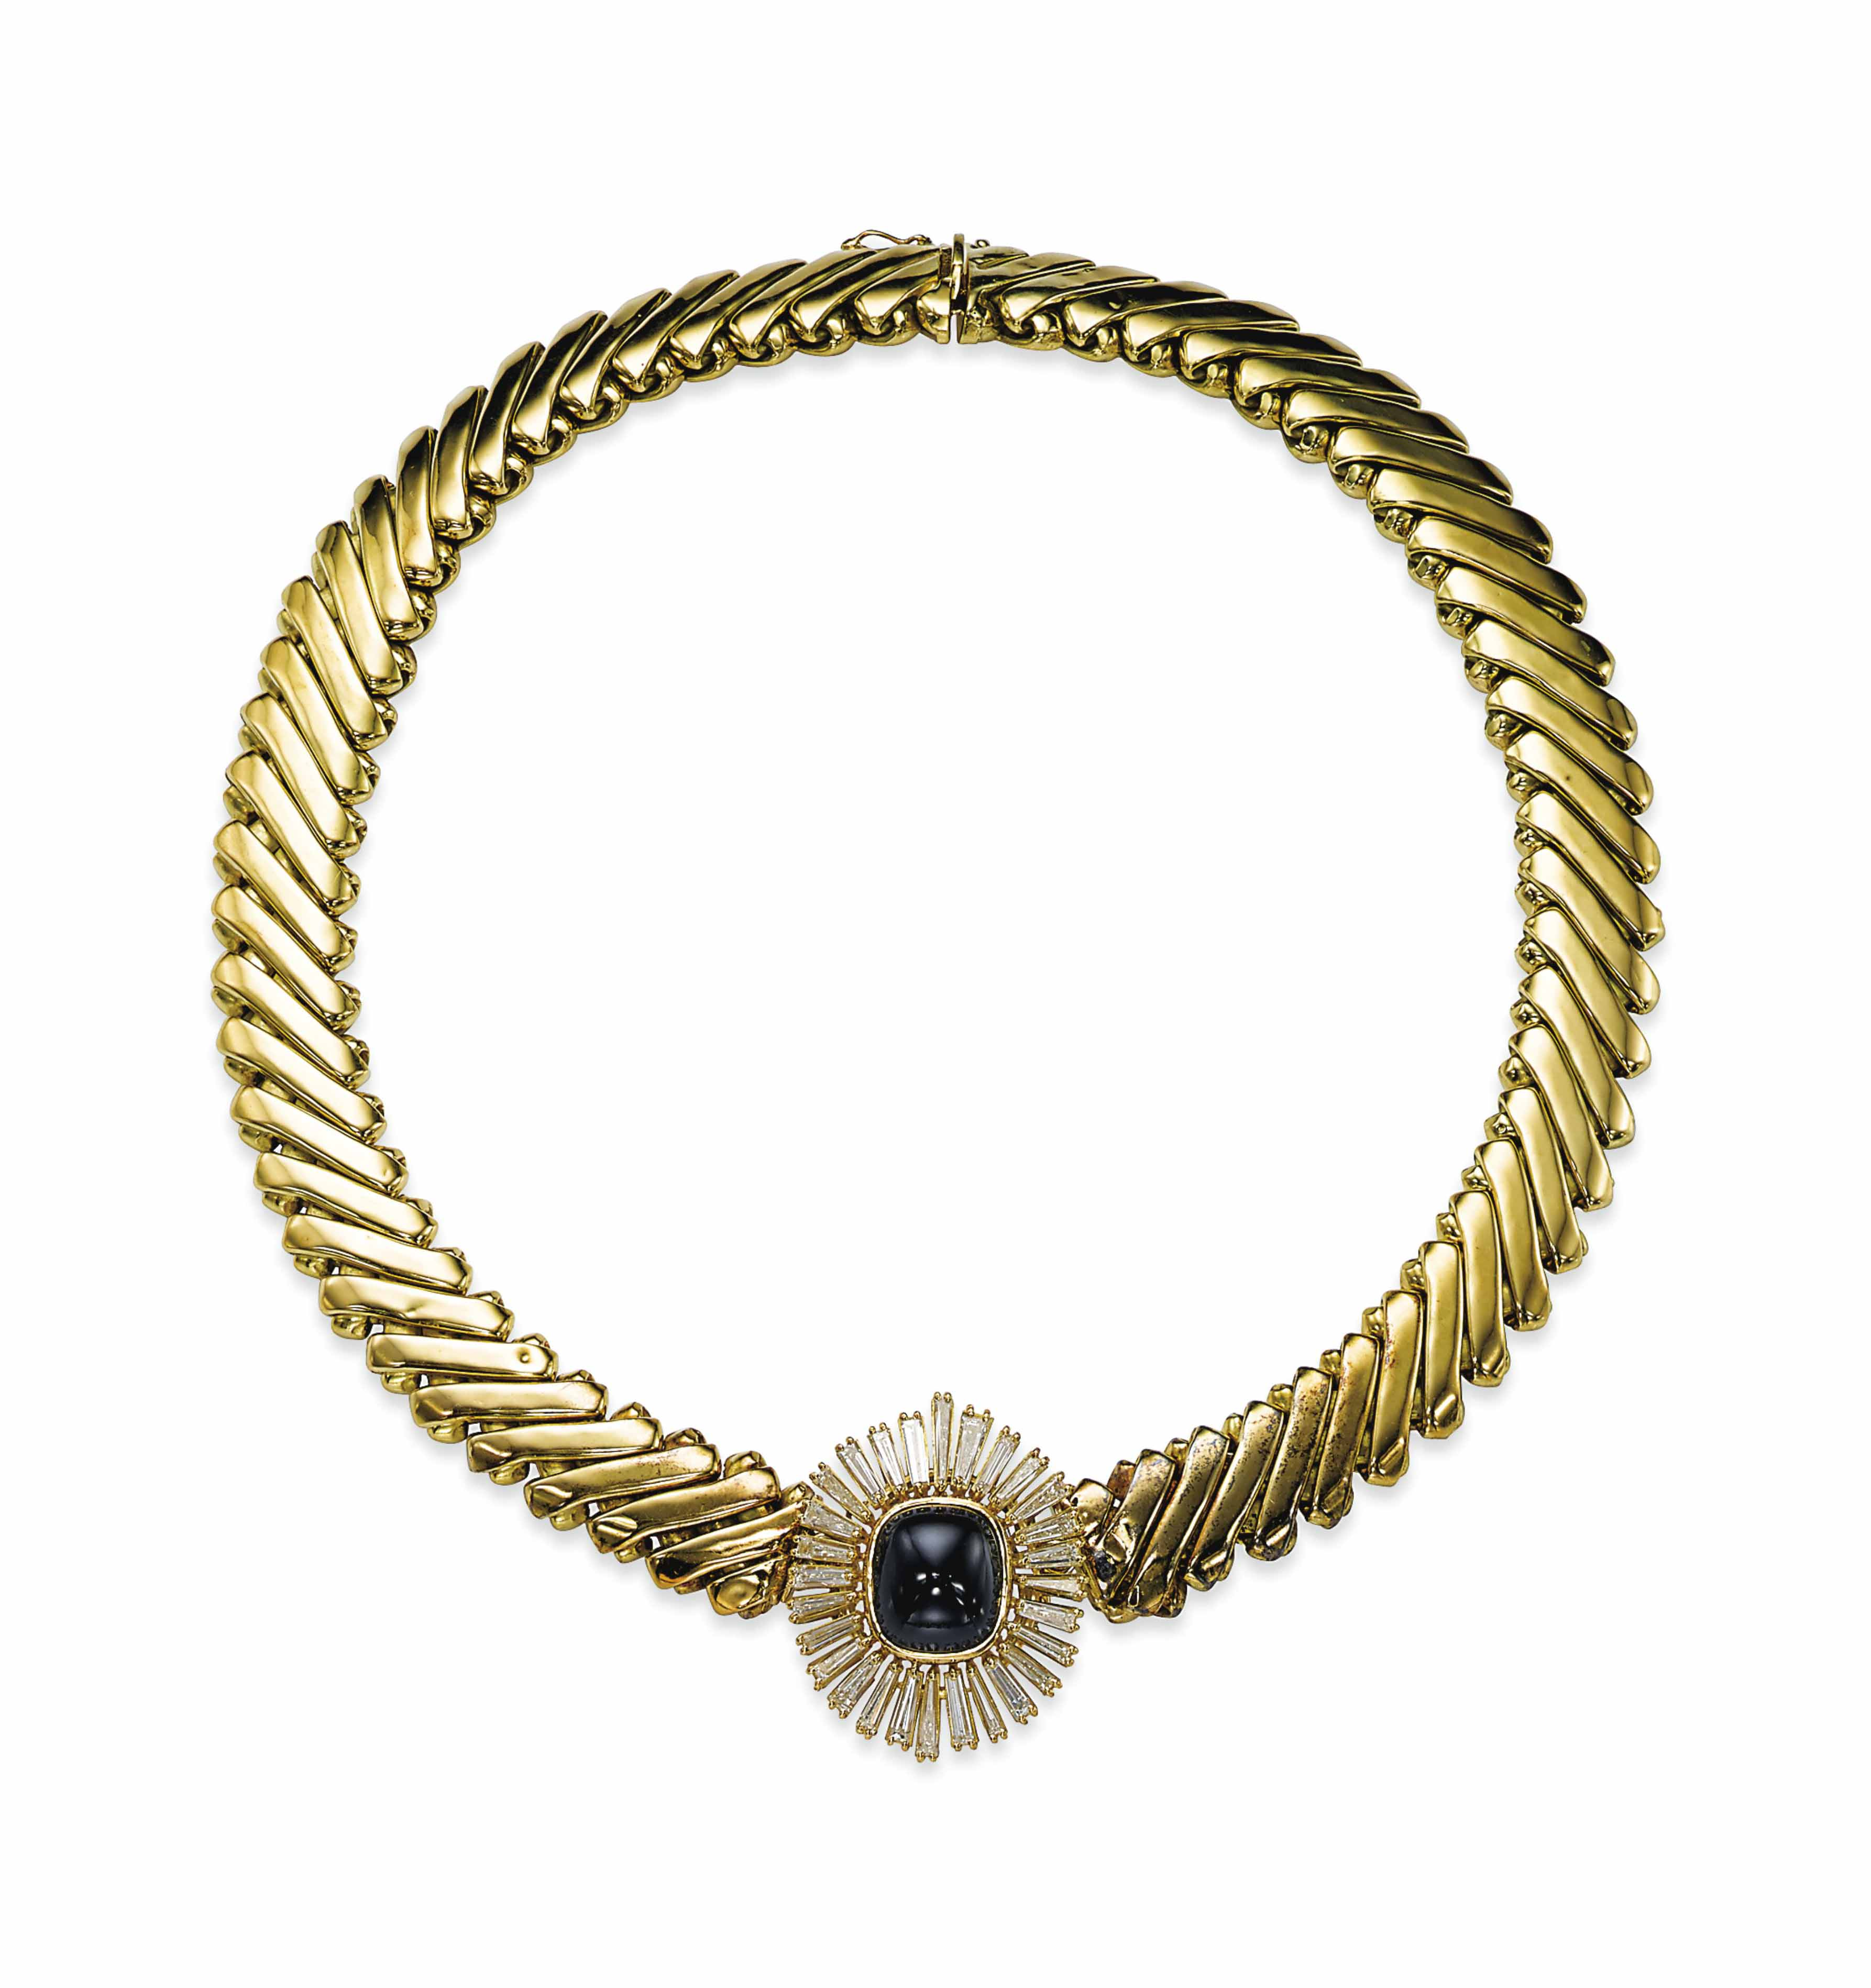 A SAPPHIRE, DIAMOND AND GOLD NECKLACE, BY BULGARI